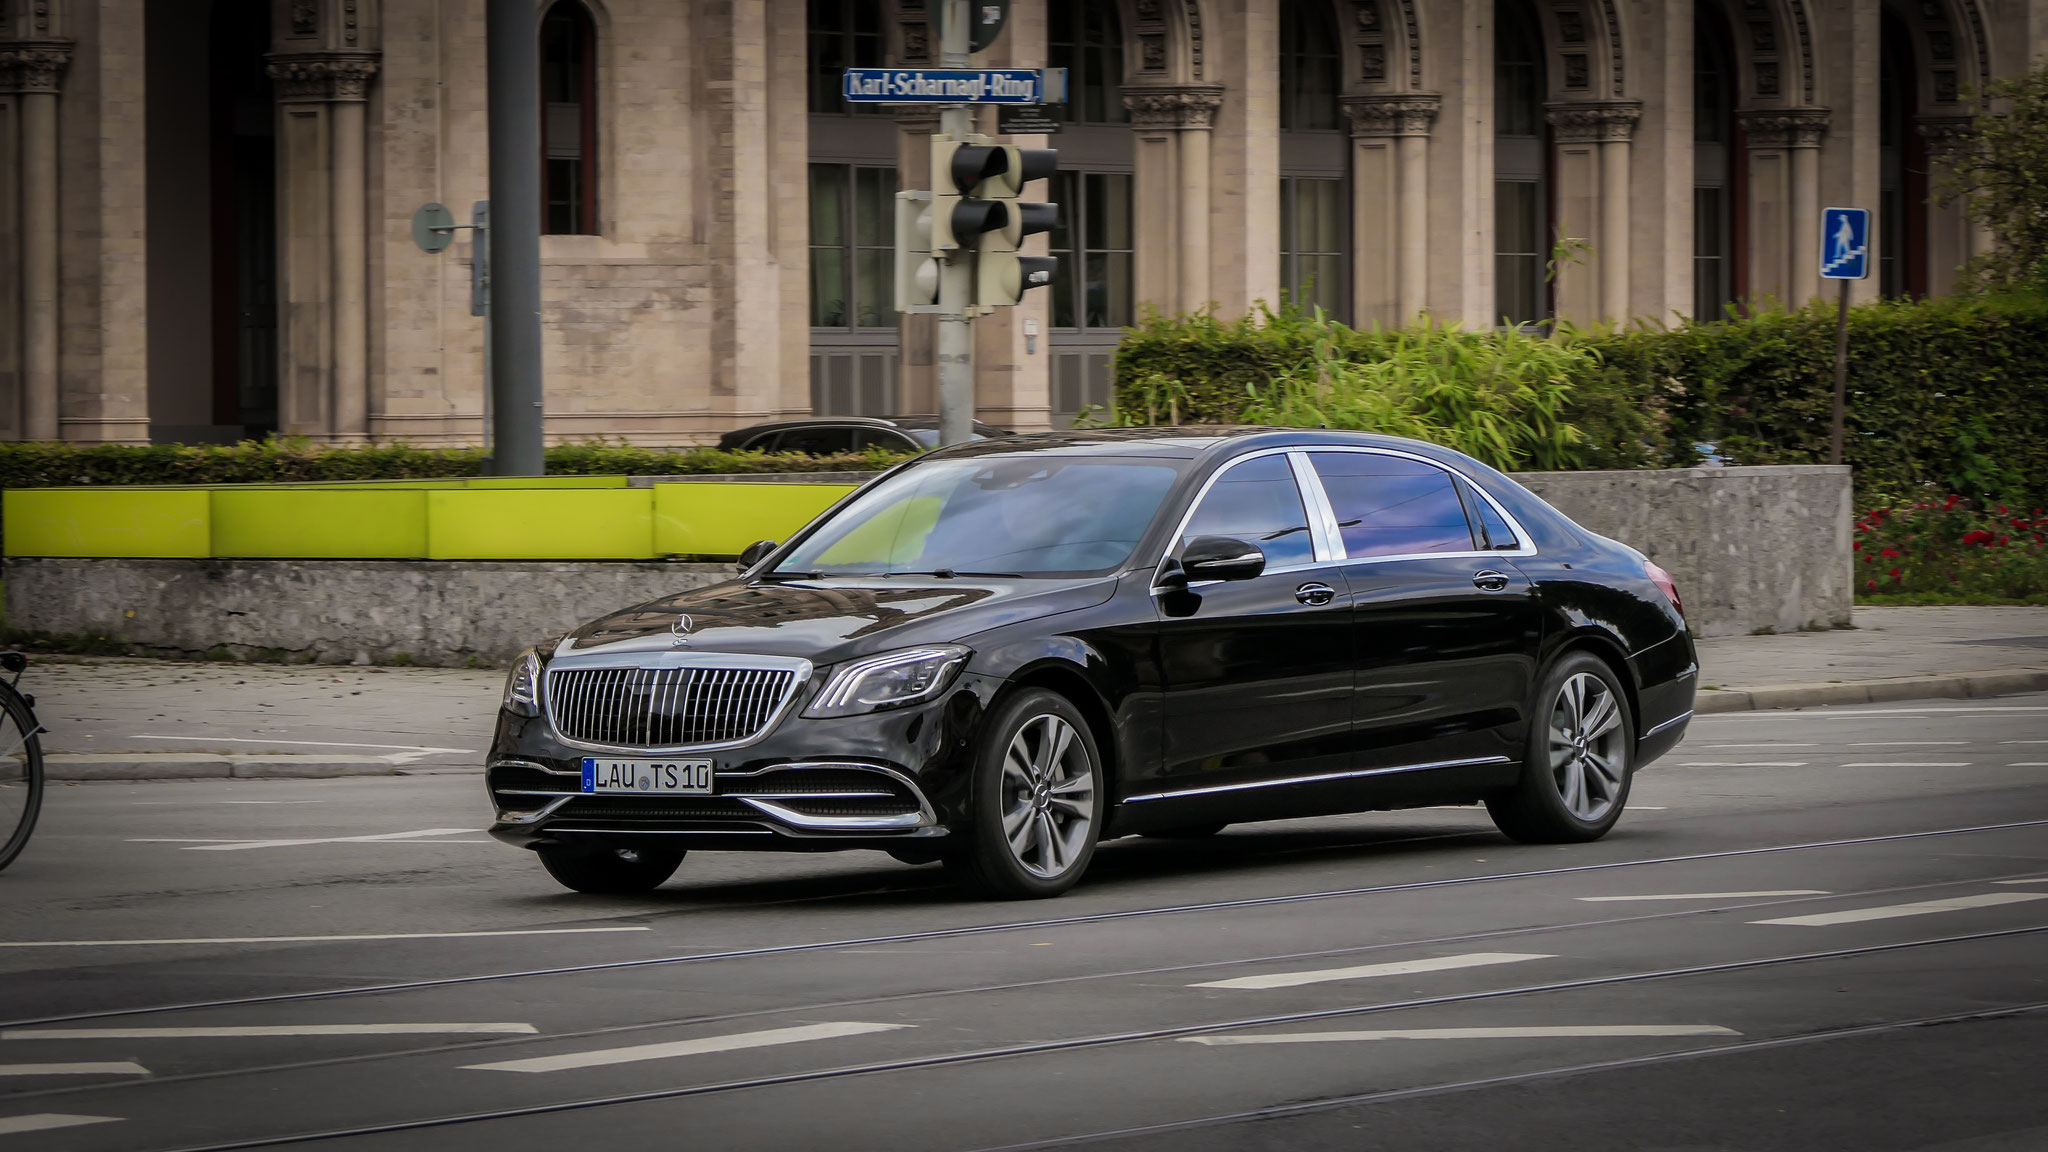 Mercedes Maybach S560 - LAU-TS-10